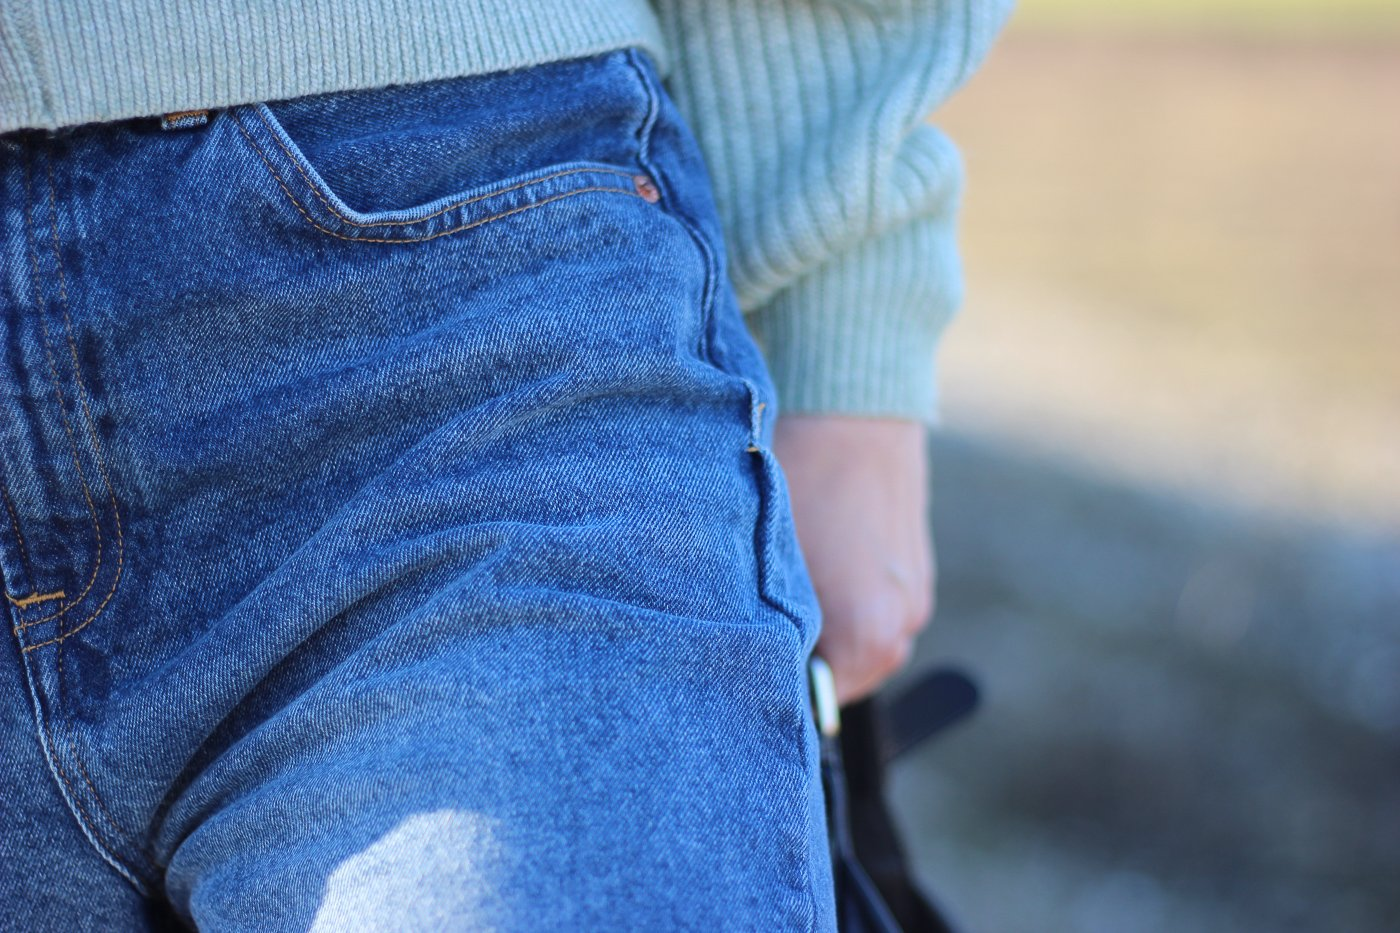 conny doll lifestyle: Details Jeanshose, Winterlook